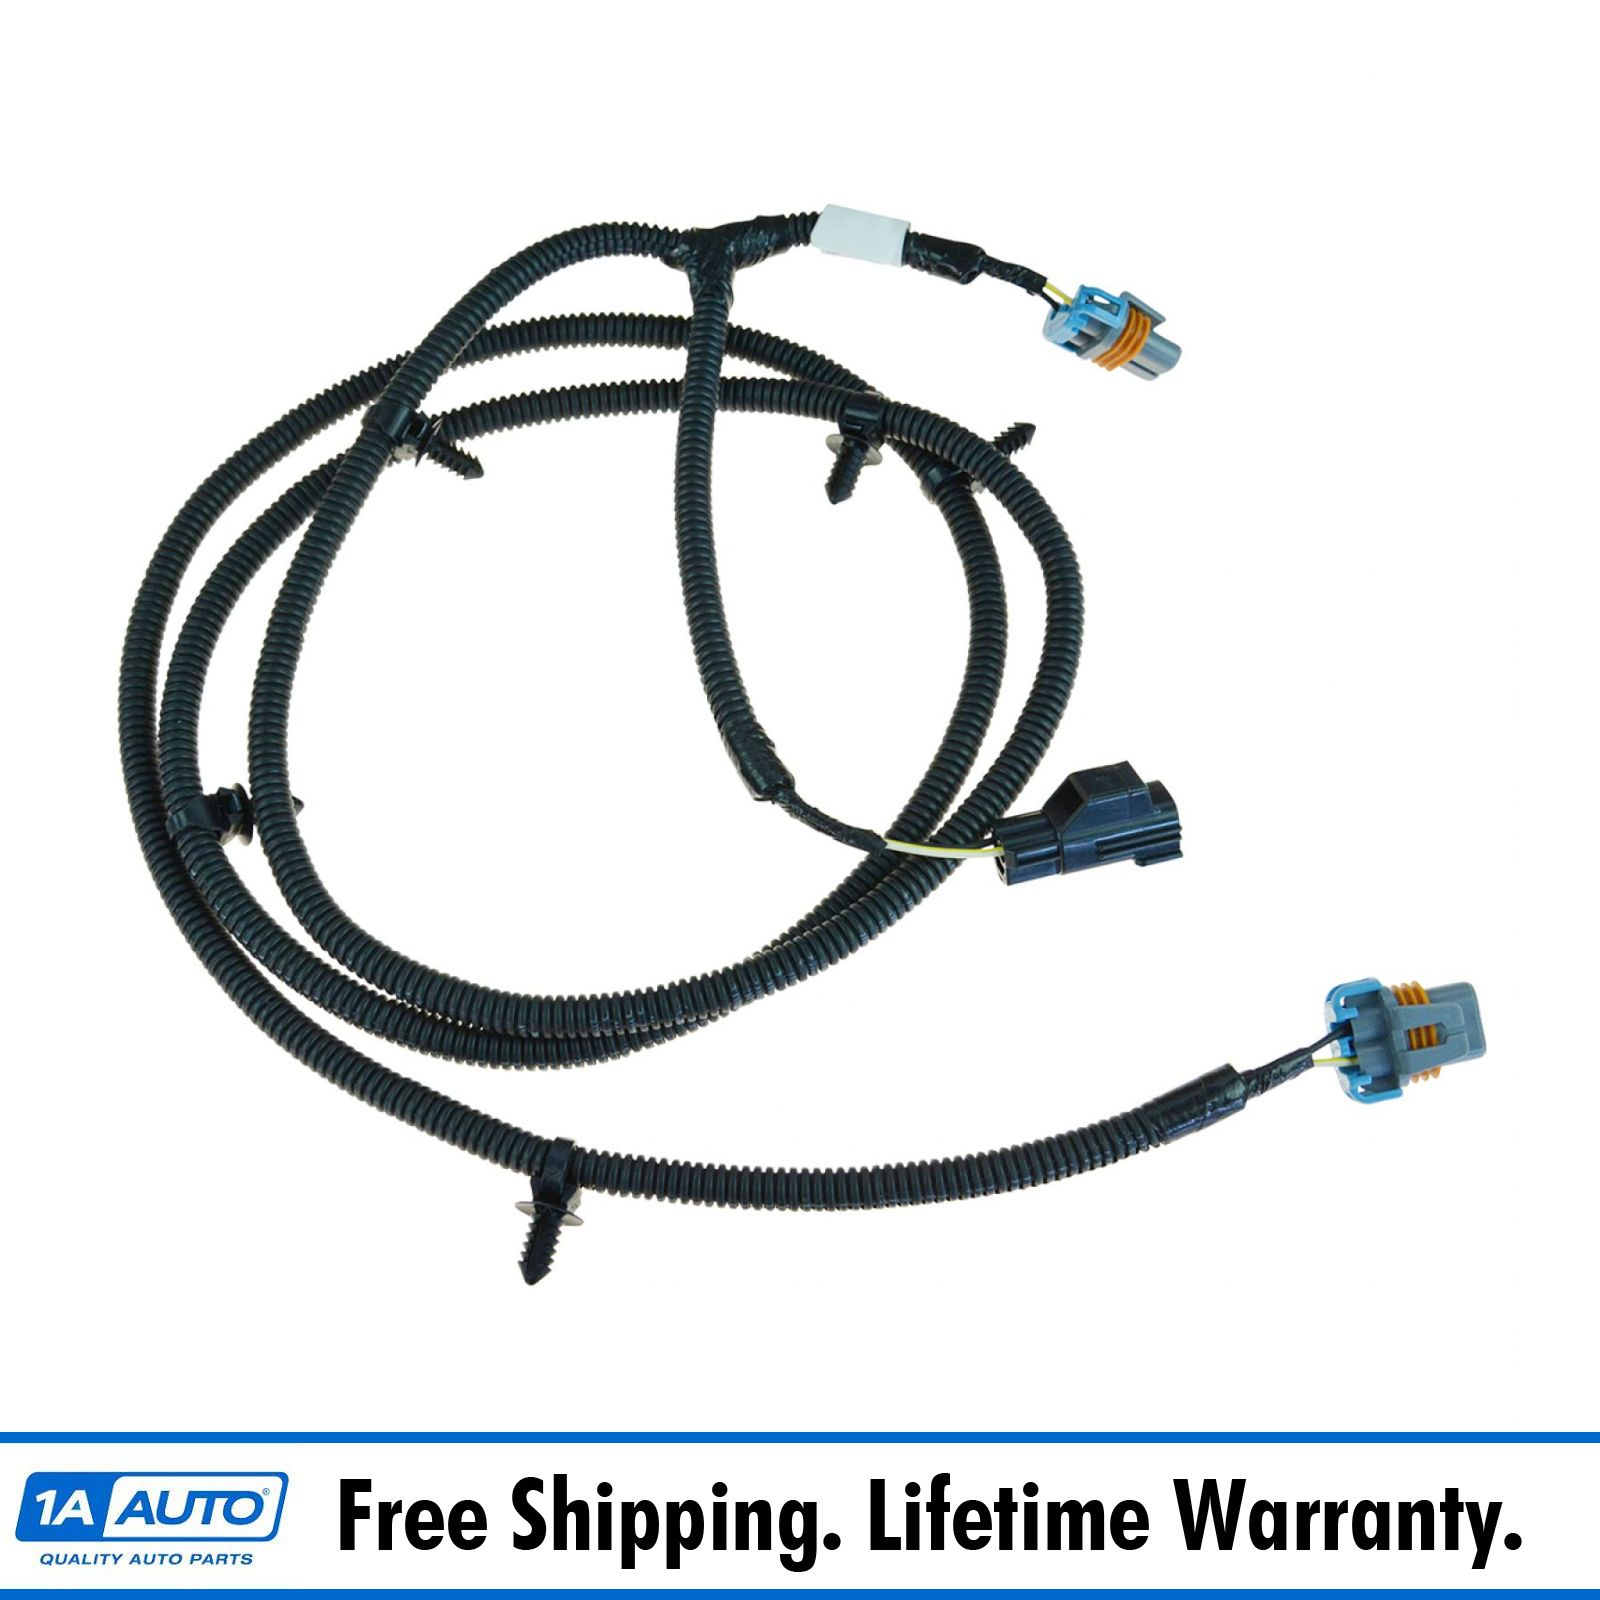 hight resolution of mopar fog light wiring harness lh left rh right for dodge ram 1500 2004 dodge ram